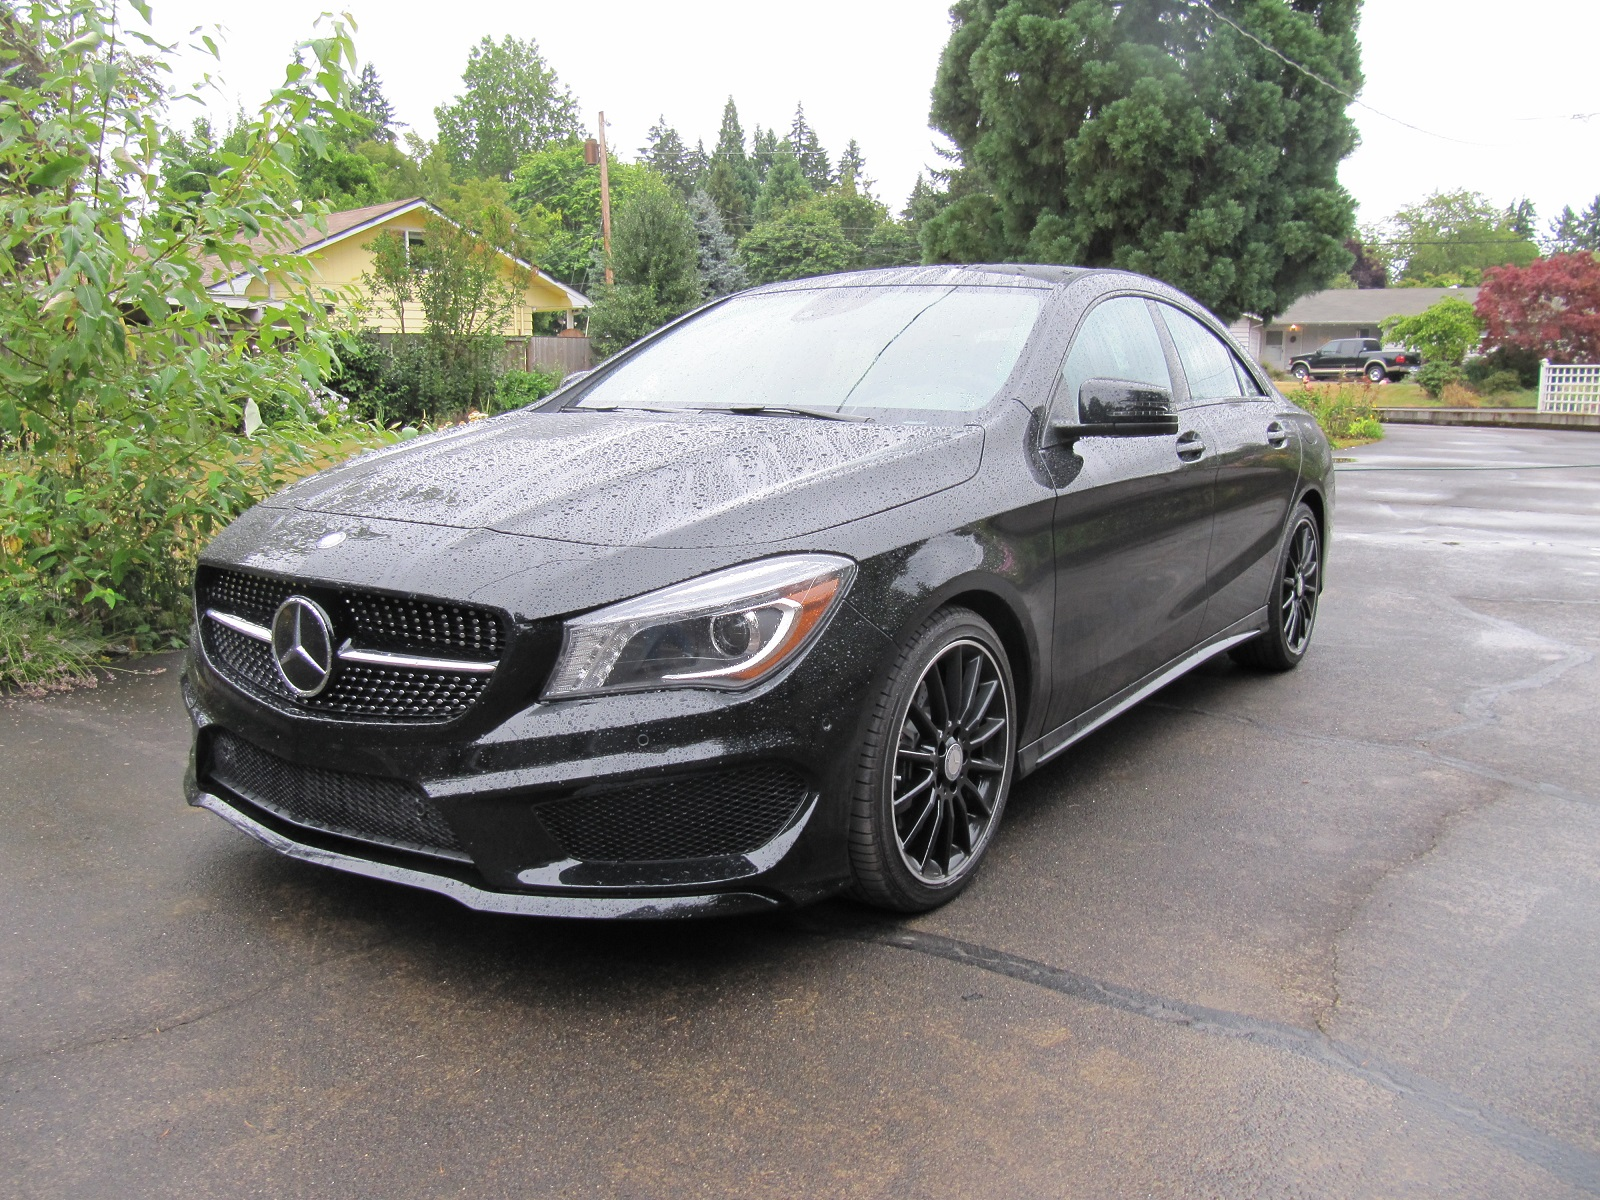 2014 mercedes cla smallest benz sees sky high demand for Smallest mercedes benz